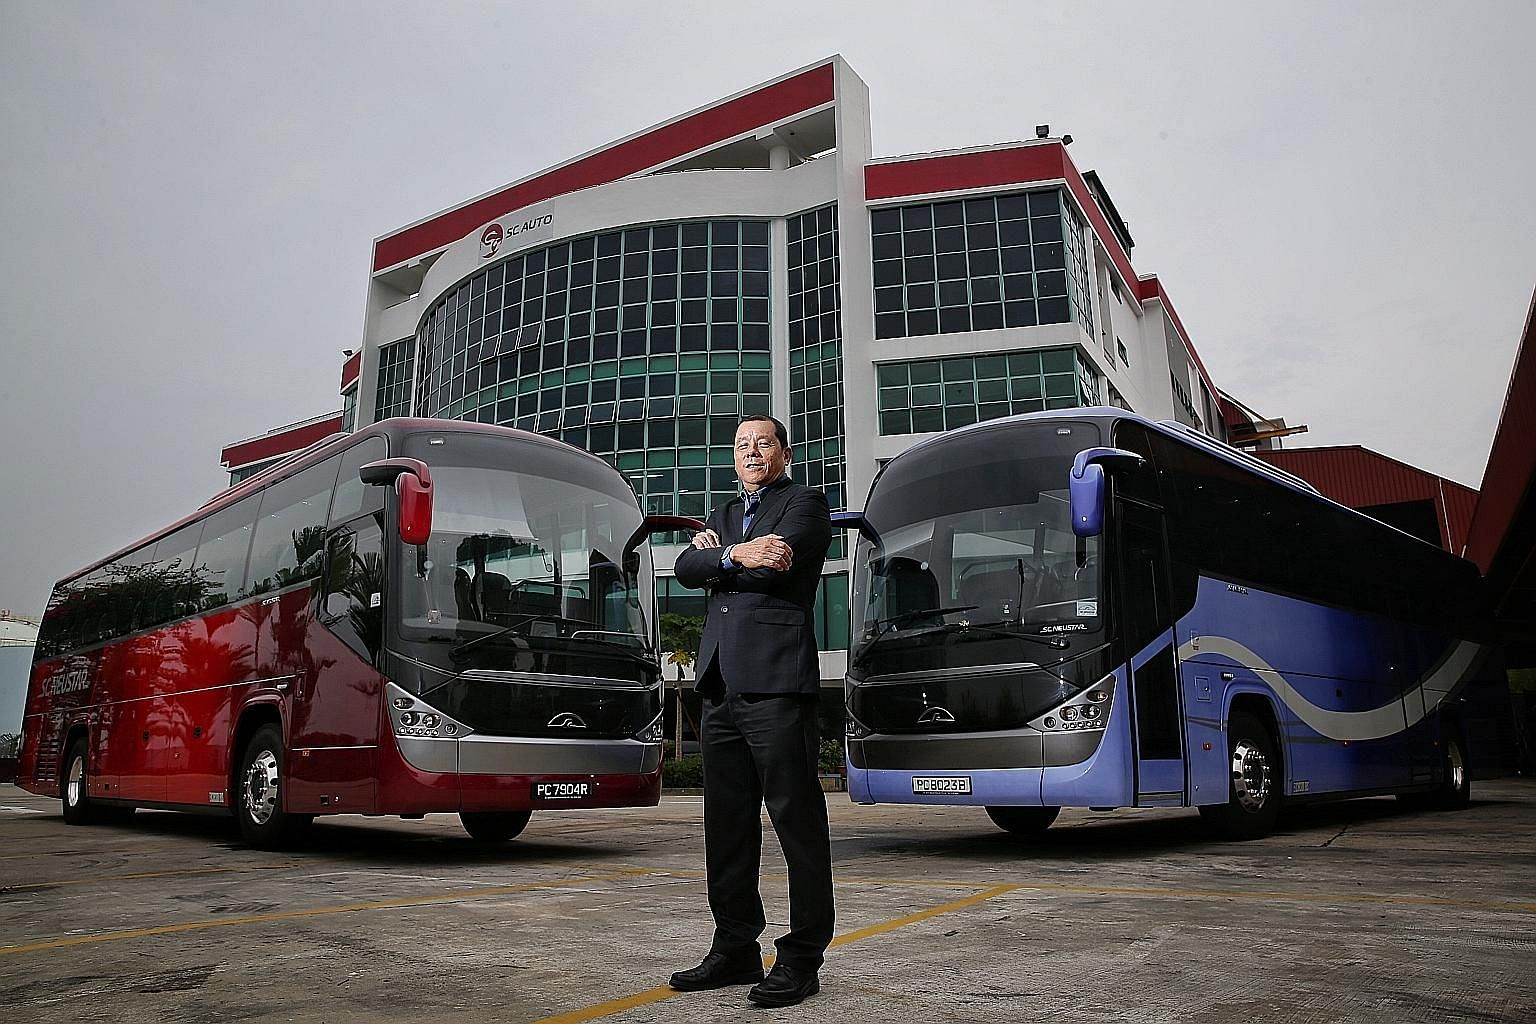 SC Auto chairman Tan Siow Chua with SC Neustar buses, the first to be completely built and designed in Singapore, at SC Auto's Senoko premises. The firm is able to deliver around 900 buses a year from its factories in Senoko and Yangon, Myanmar. Mr T